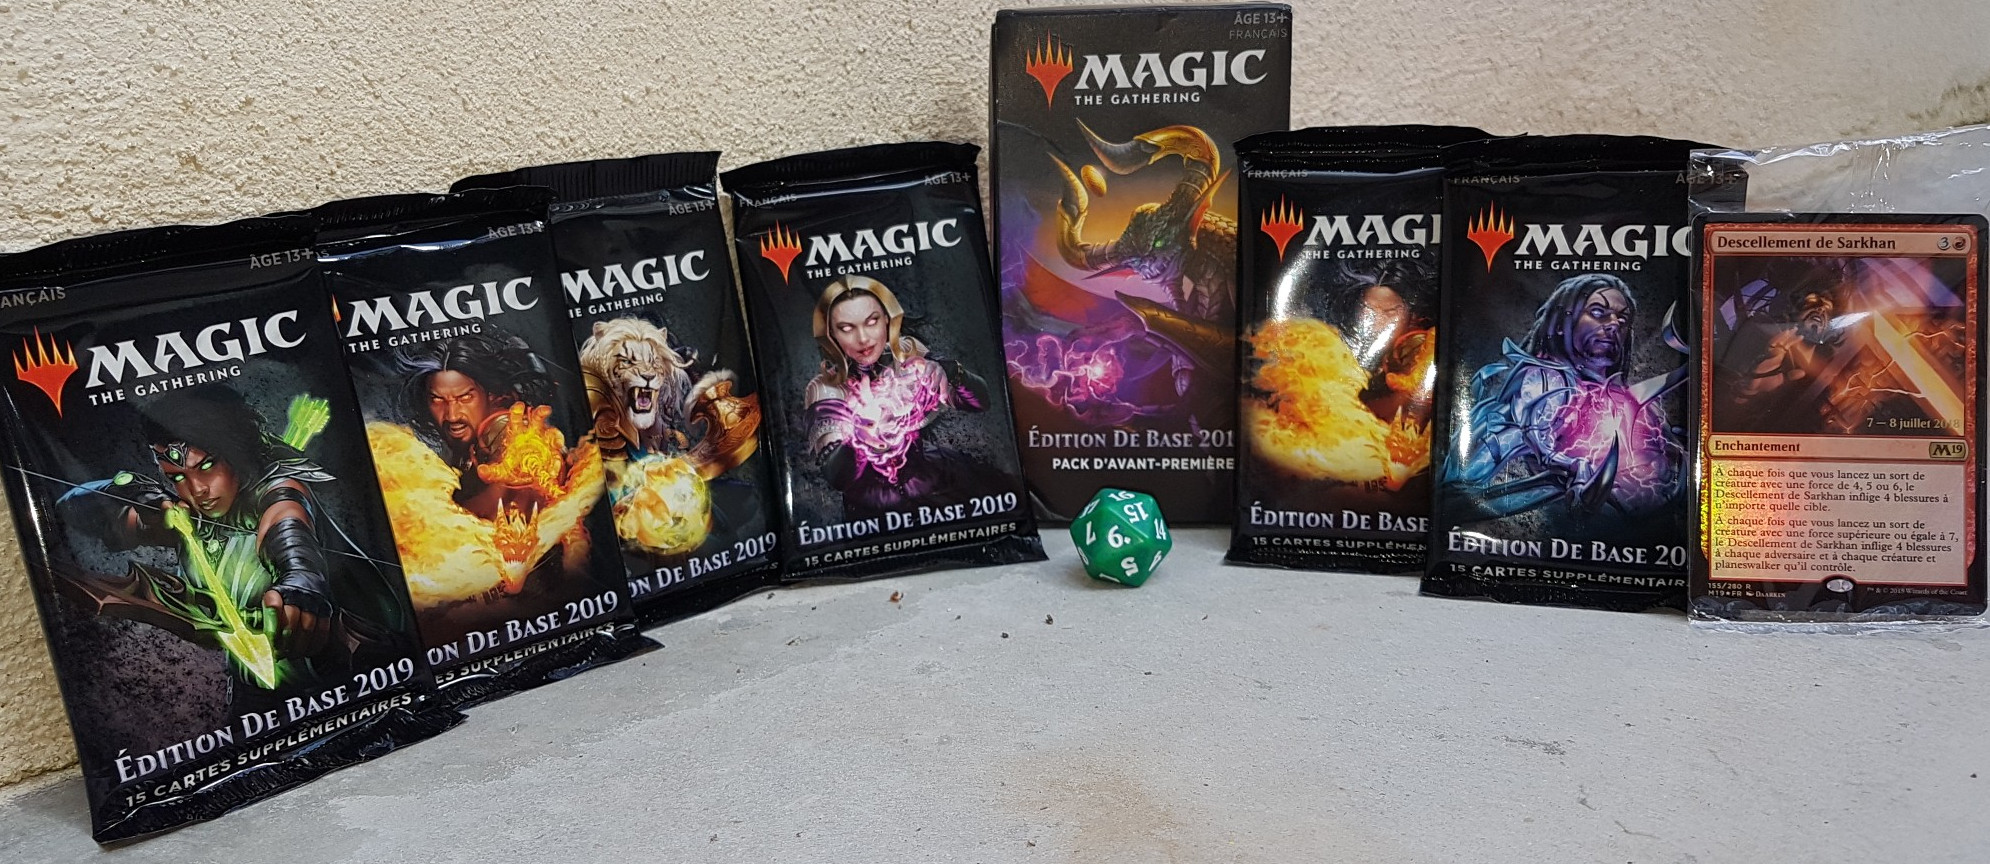 Libros De Magic The Gathering Bien Commencer Magic The Gathering Avec Les Decks De